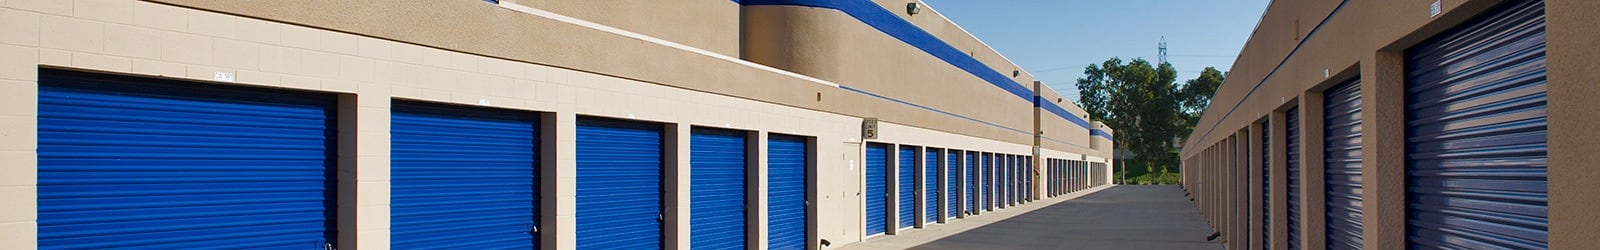 Get storage now at Mira Mesa Self Storage in San Diego, CA